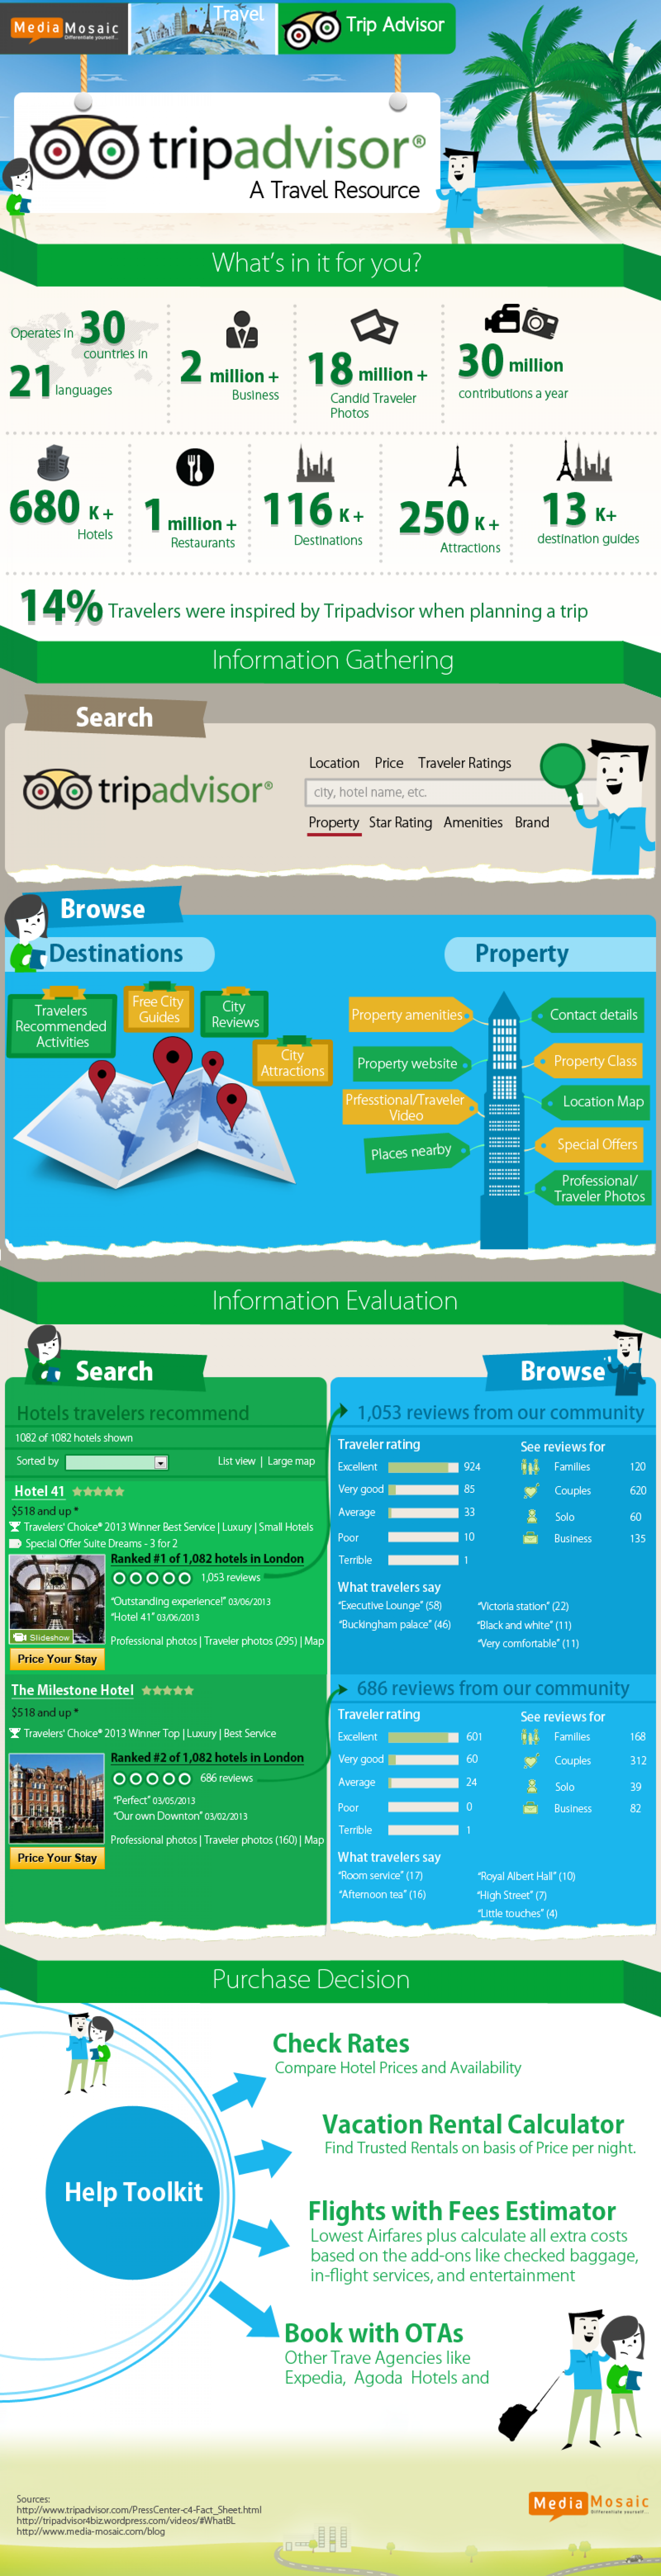 A Traveler's Resource for Tripadvisor [Infographic] | Media-Mosaic Infographic